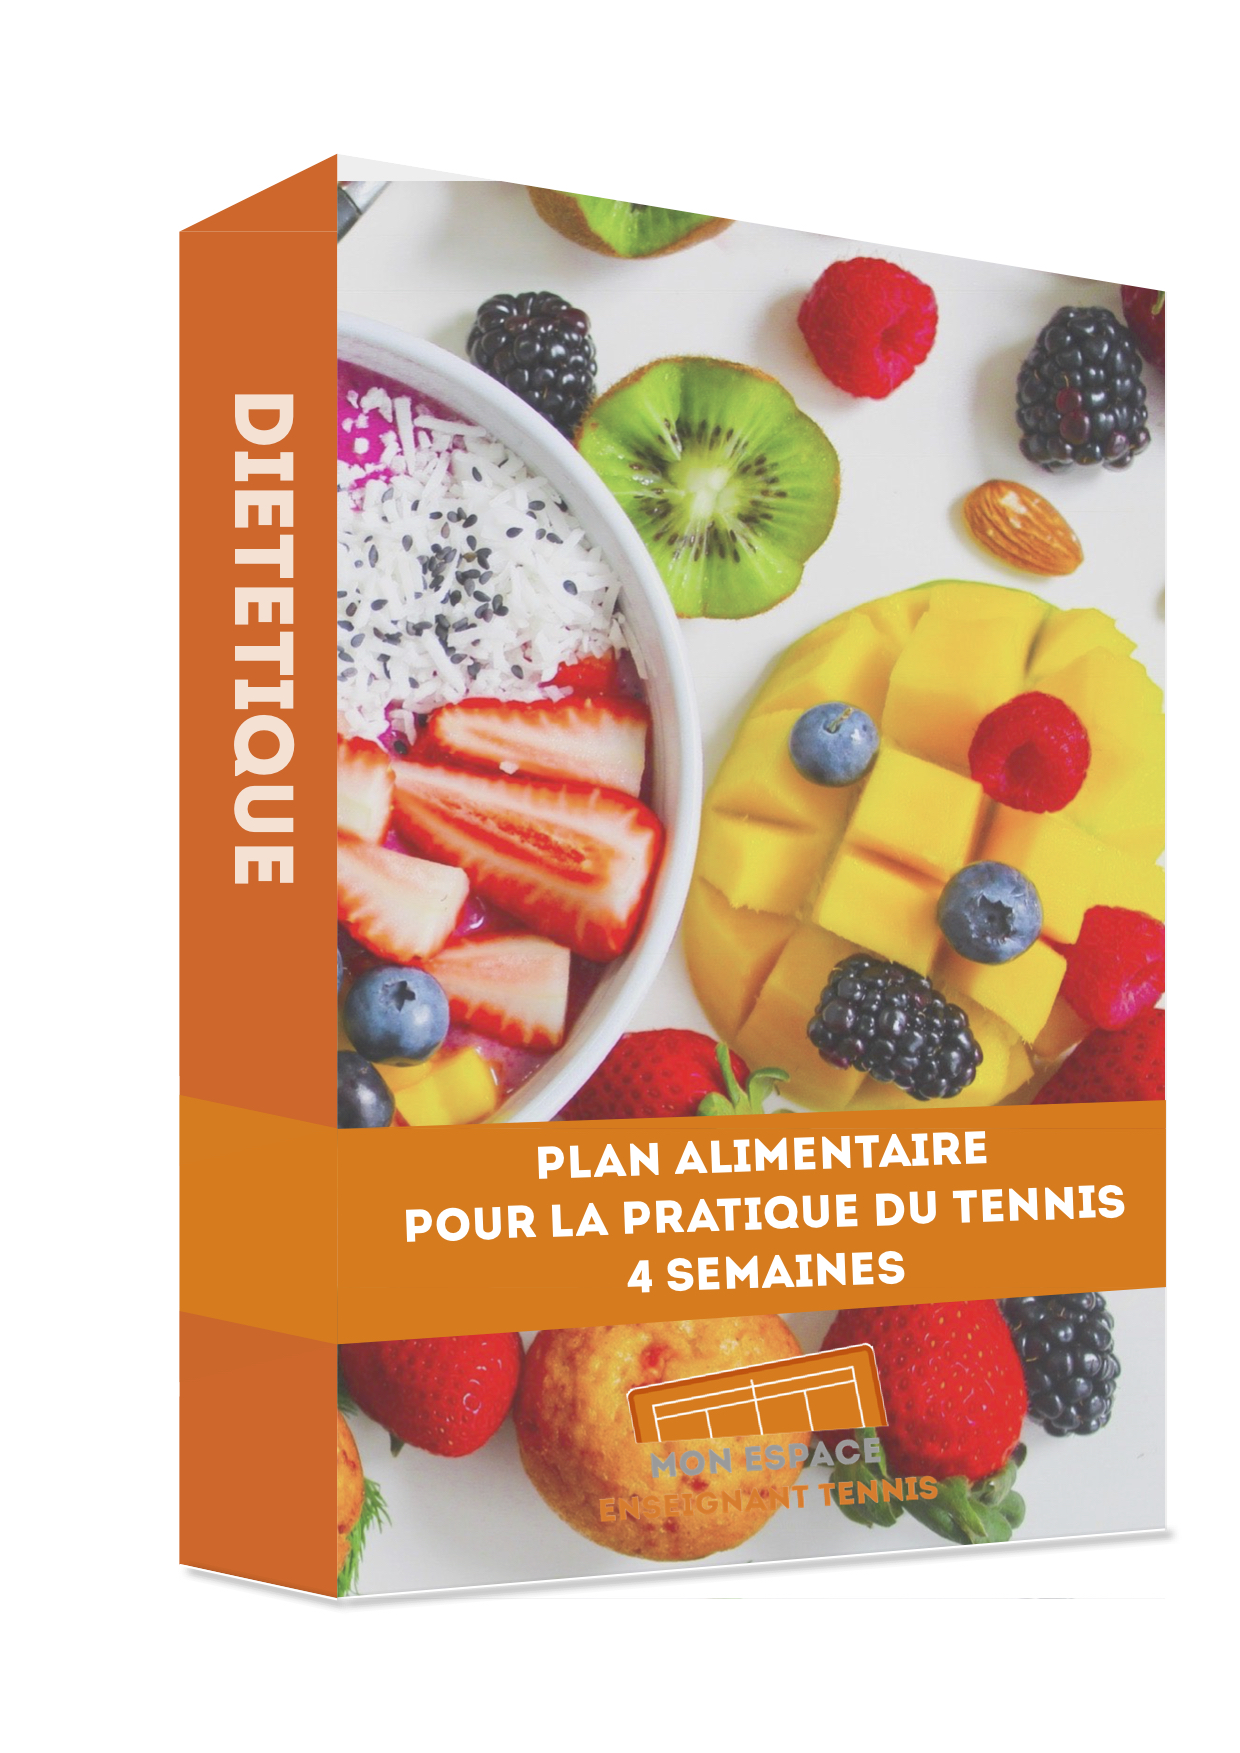 formation, dietetique plan alimentaire tennis